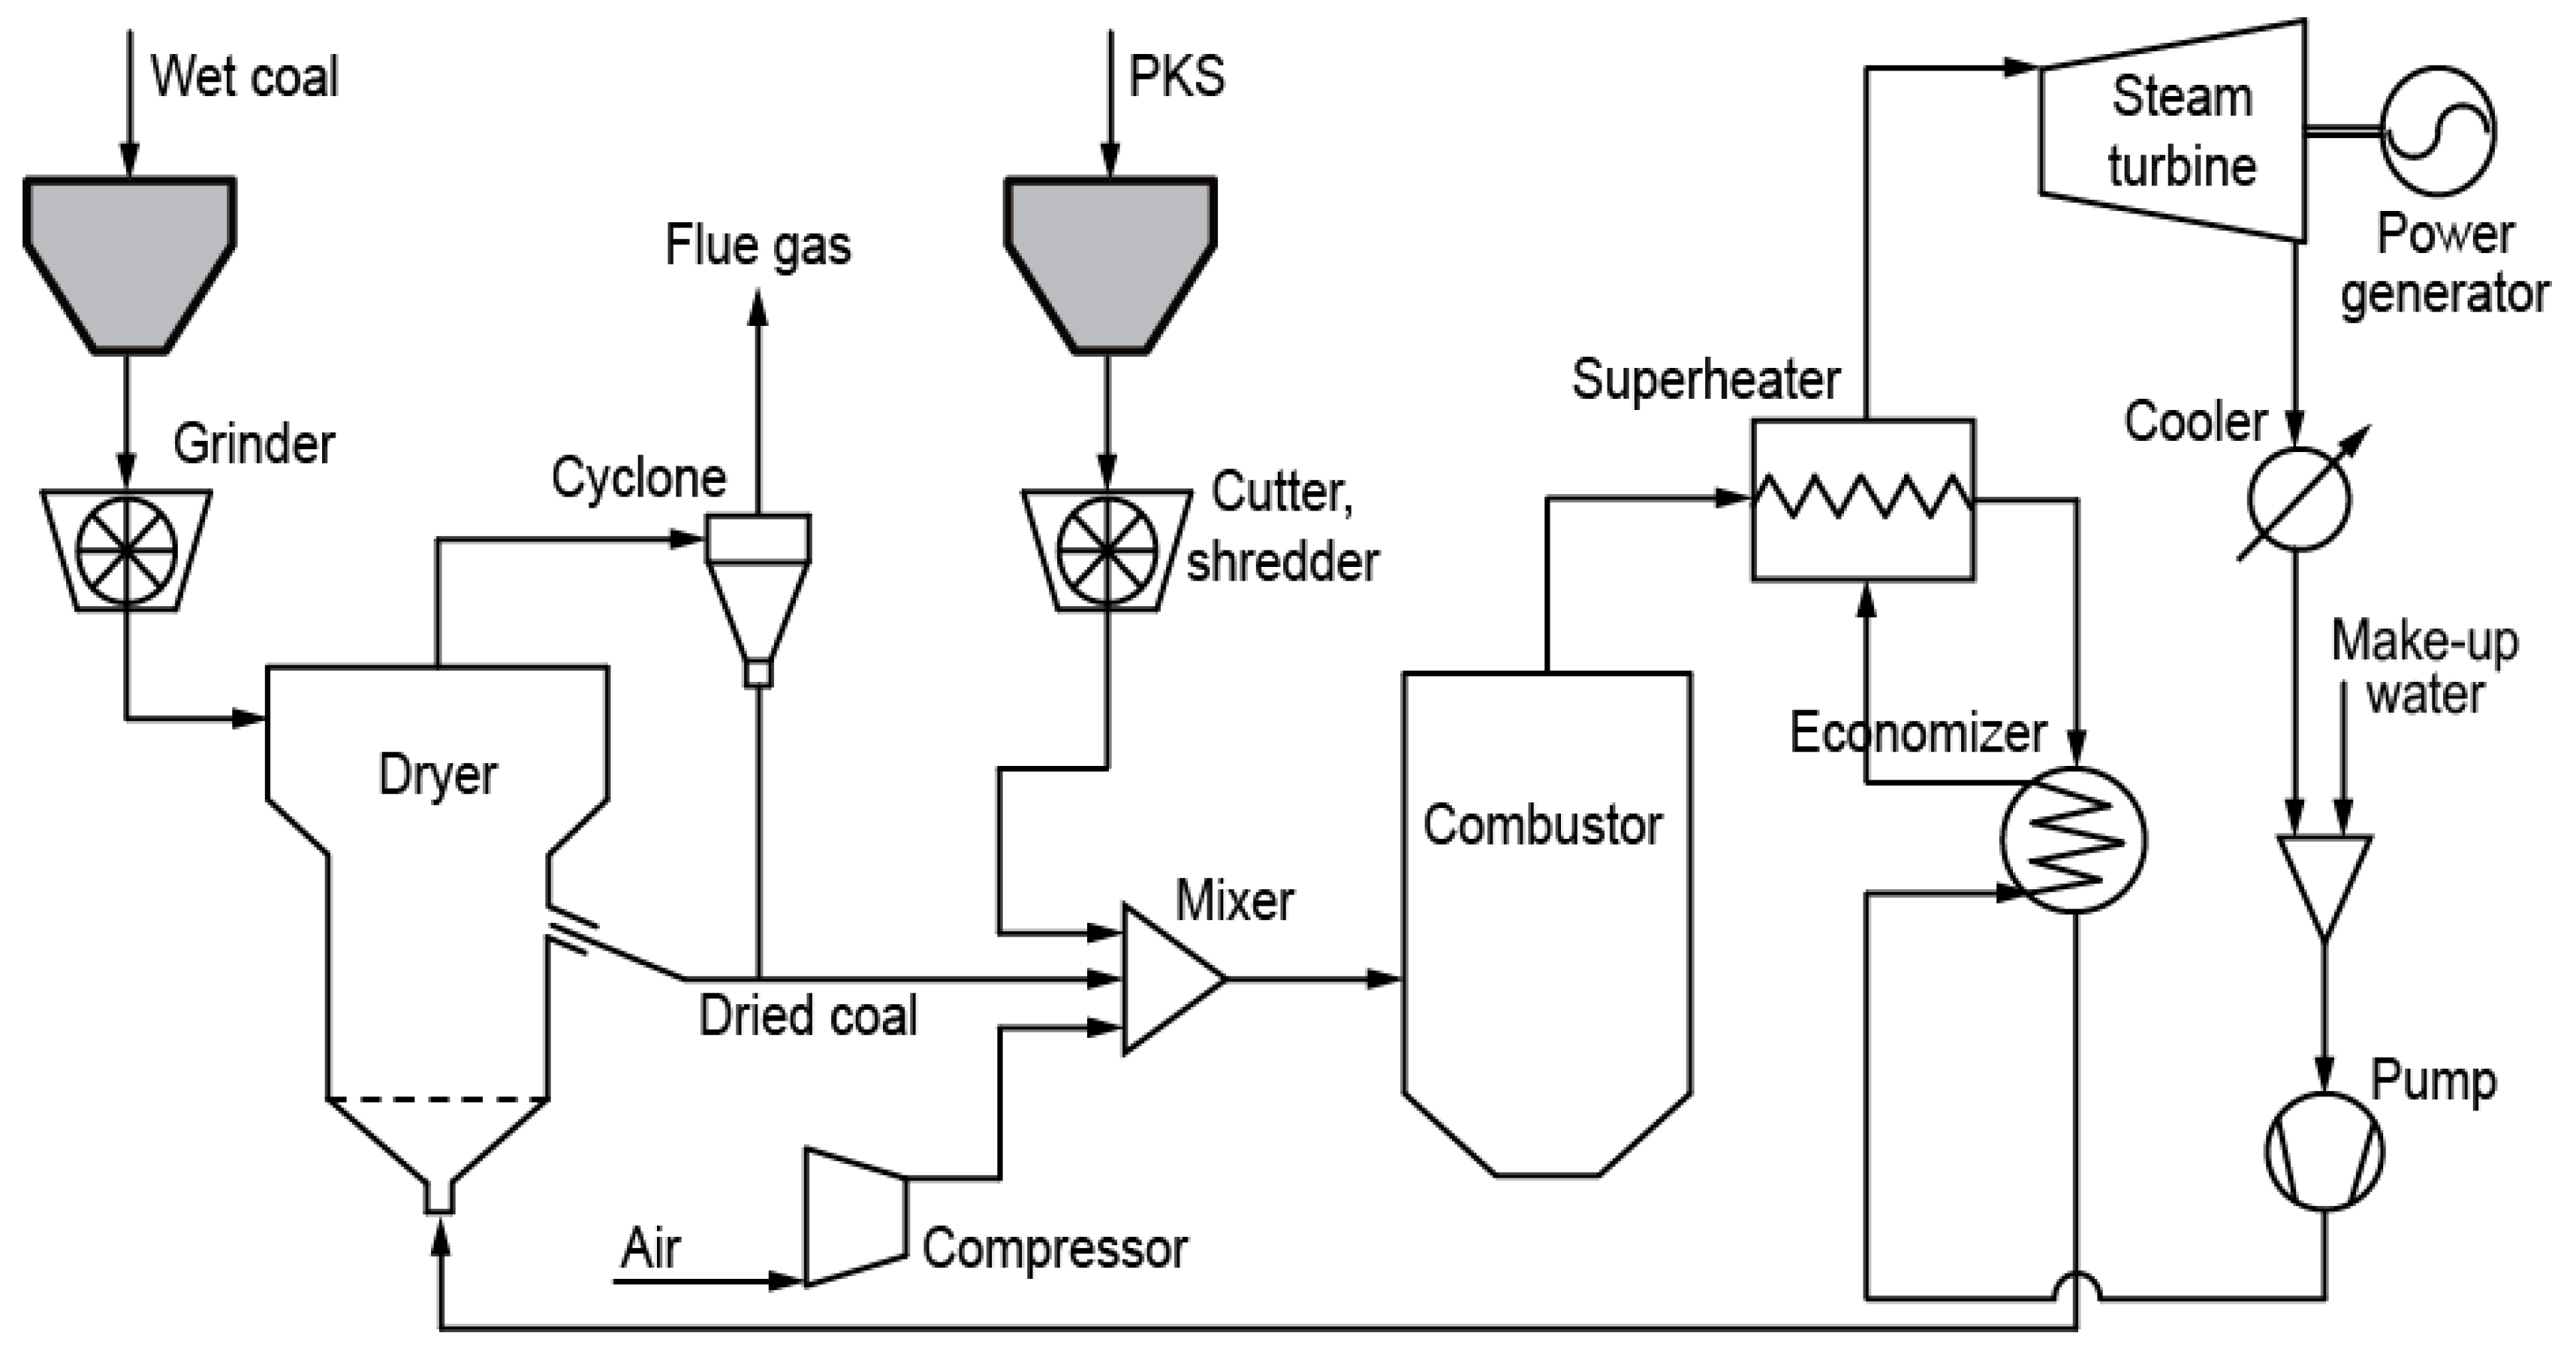 Griffin Ac Compressor Wiring Schematic 38 Diagram Images Air Energies 09 00137 G001 Free Full Text Computational Fluid Dynamic Analysis Refrigeration